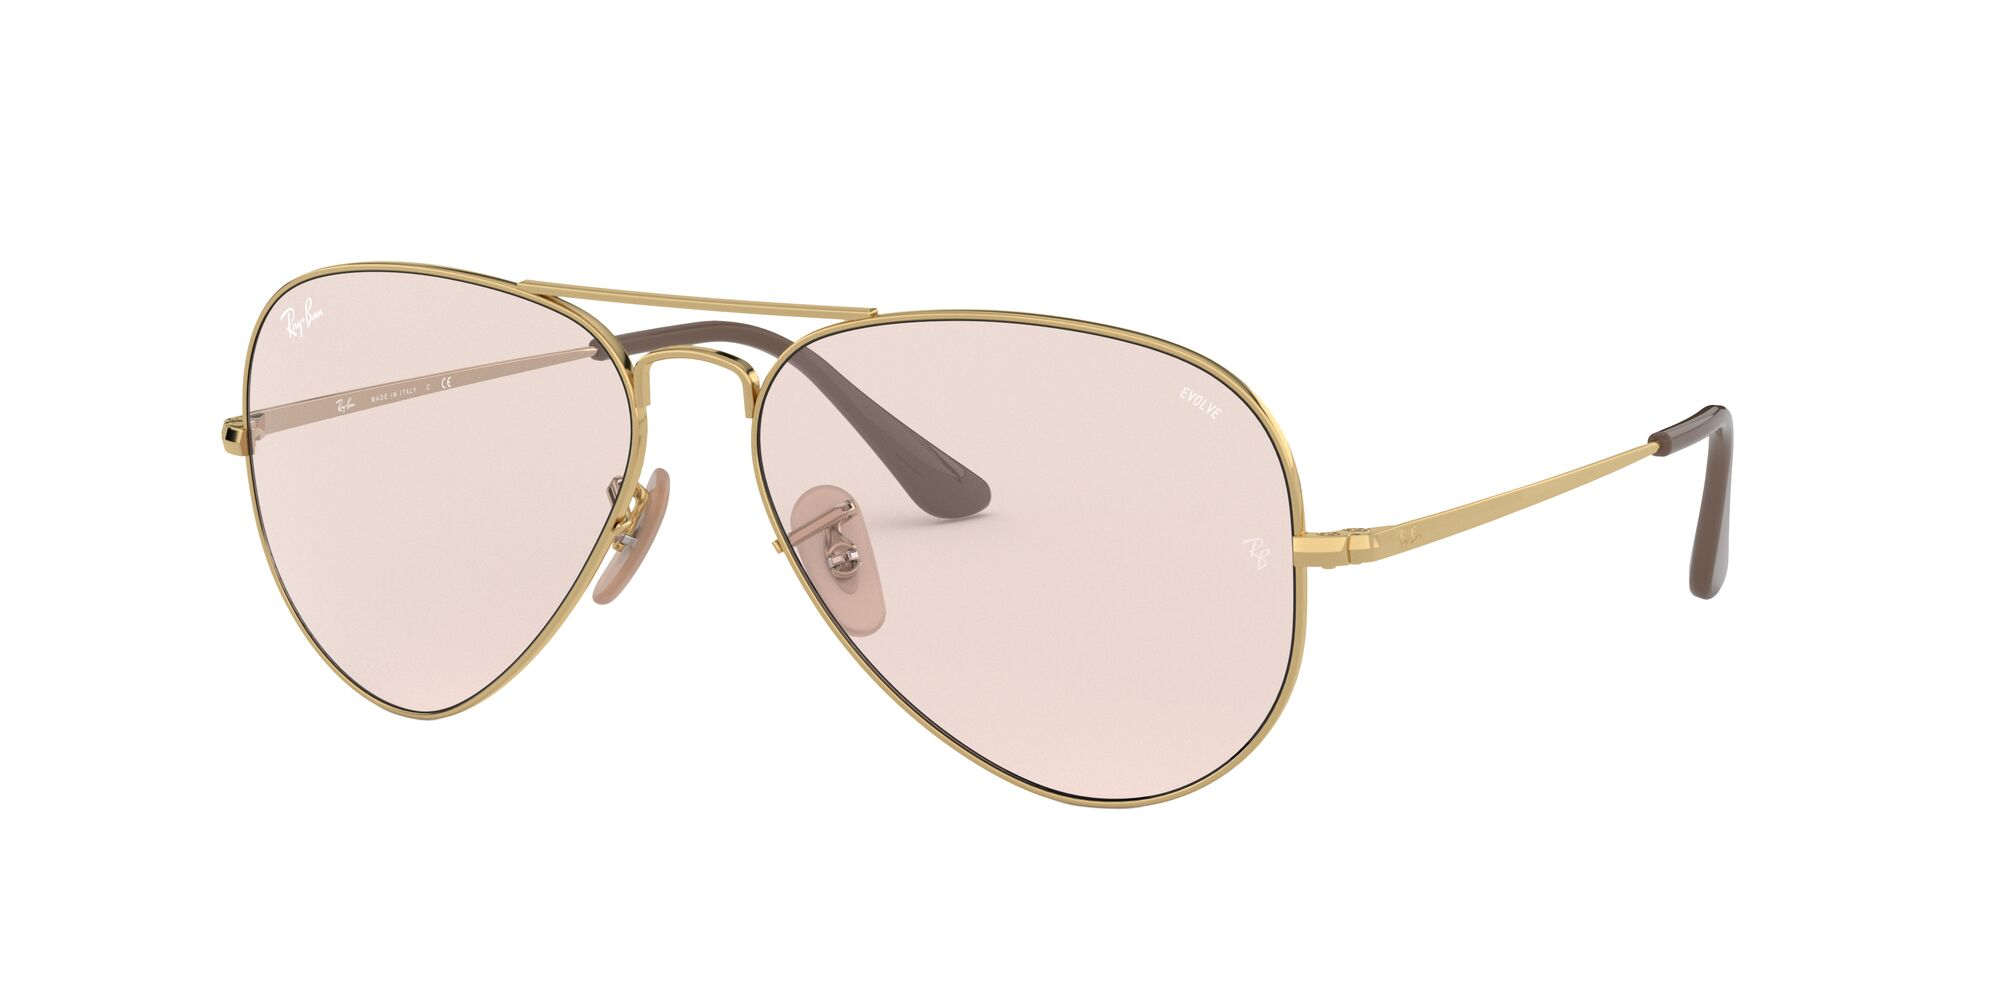 Angle_Left01 Ray-Ban Ray-Ban 0RB3689 001/T5 58/14 Goud/Roze